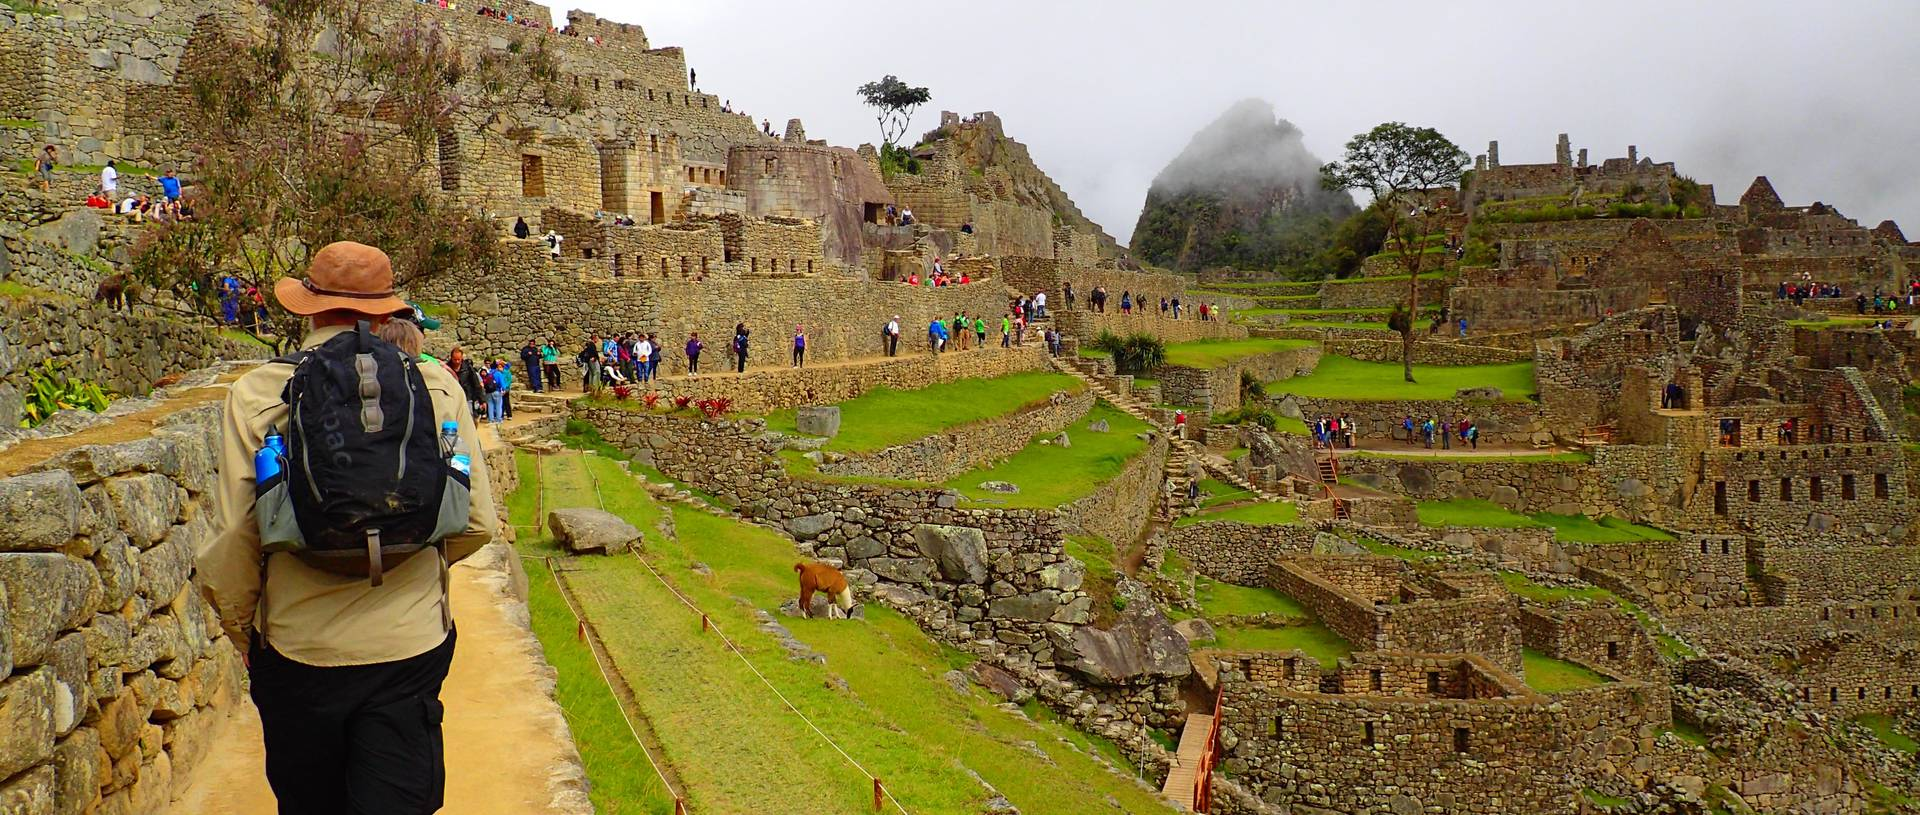 Walking The Terraces Of Machu Picchu